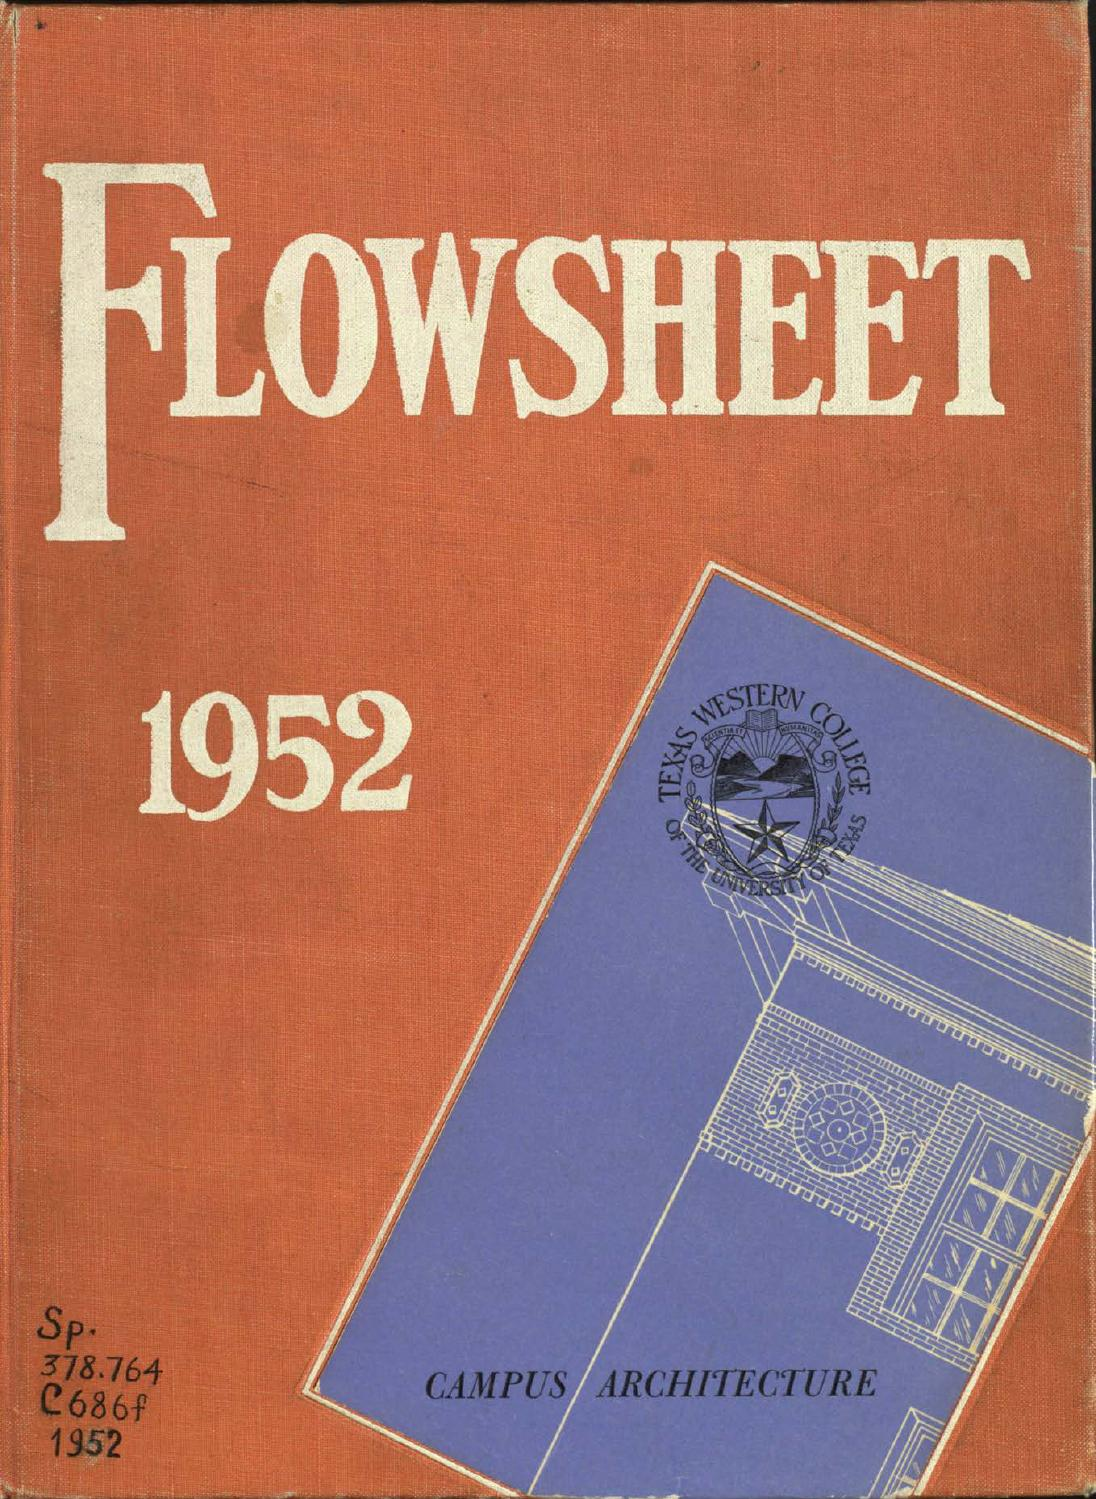 Flowsheet 1952 by UTEP Library - issuu